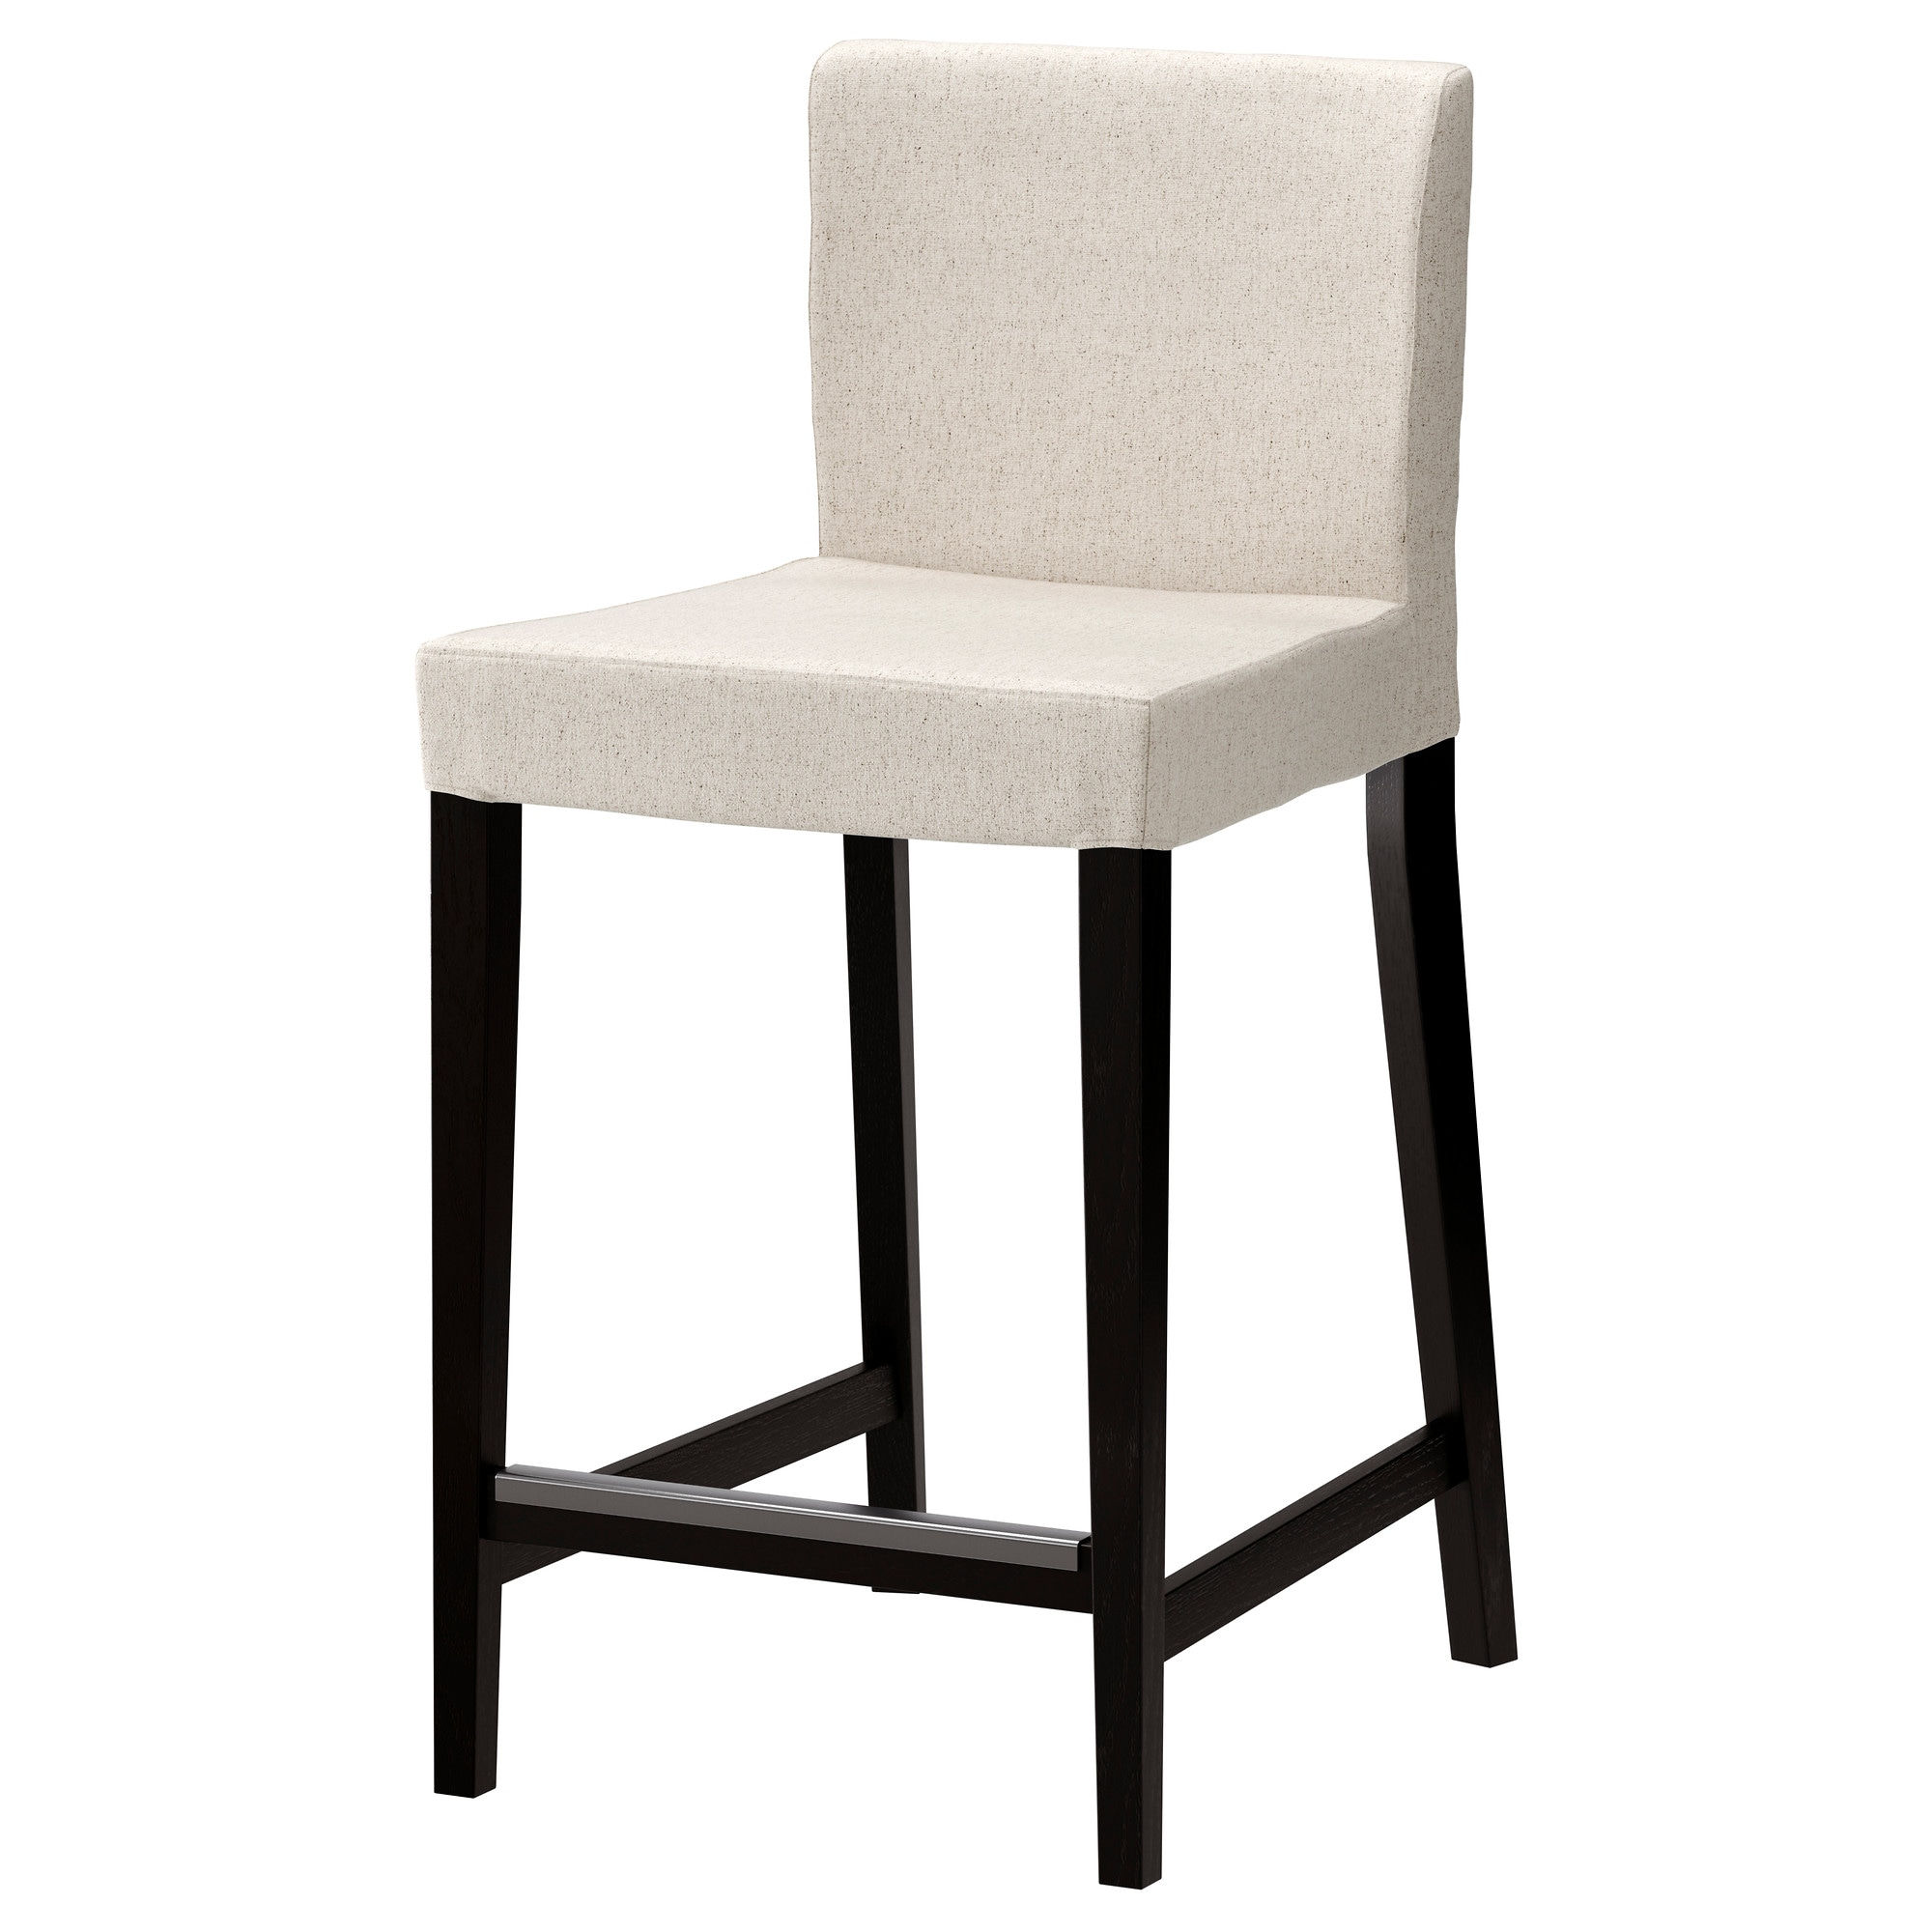 HENRIKSDAL Bar Stool With Backrest   26x19